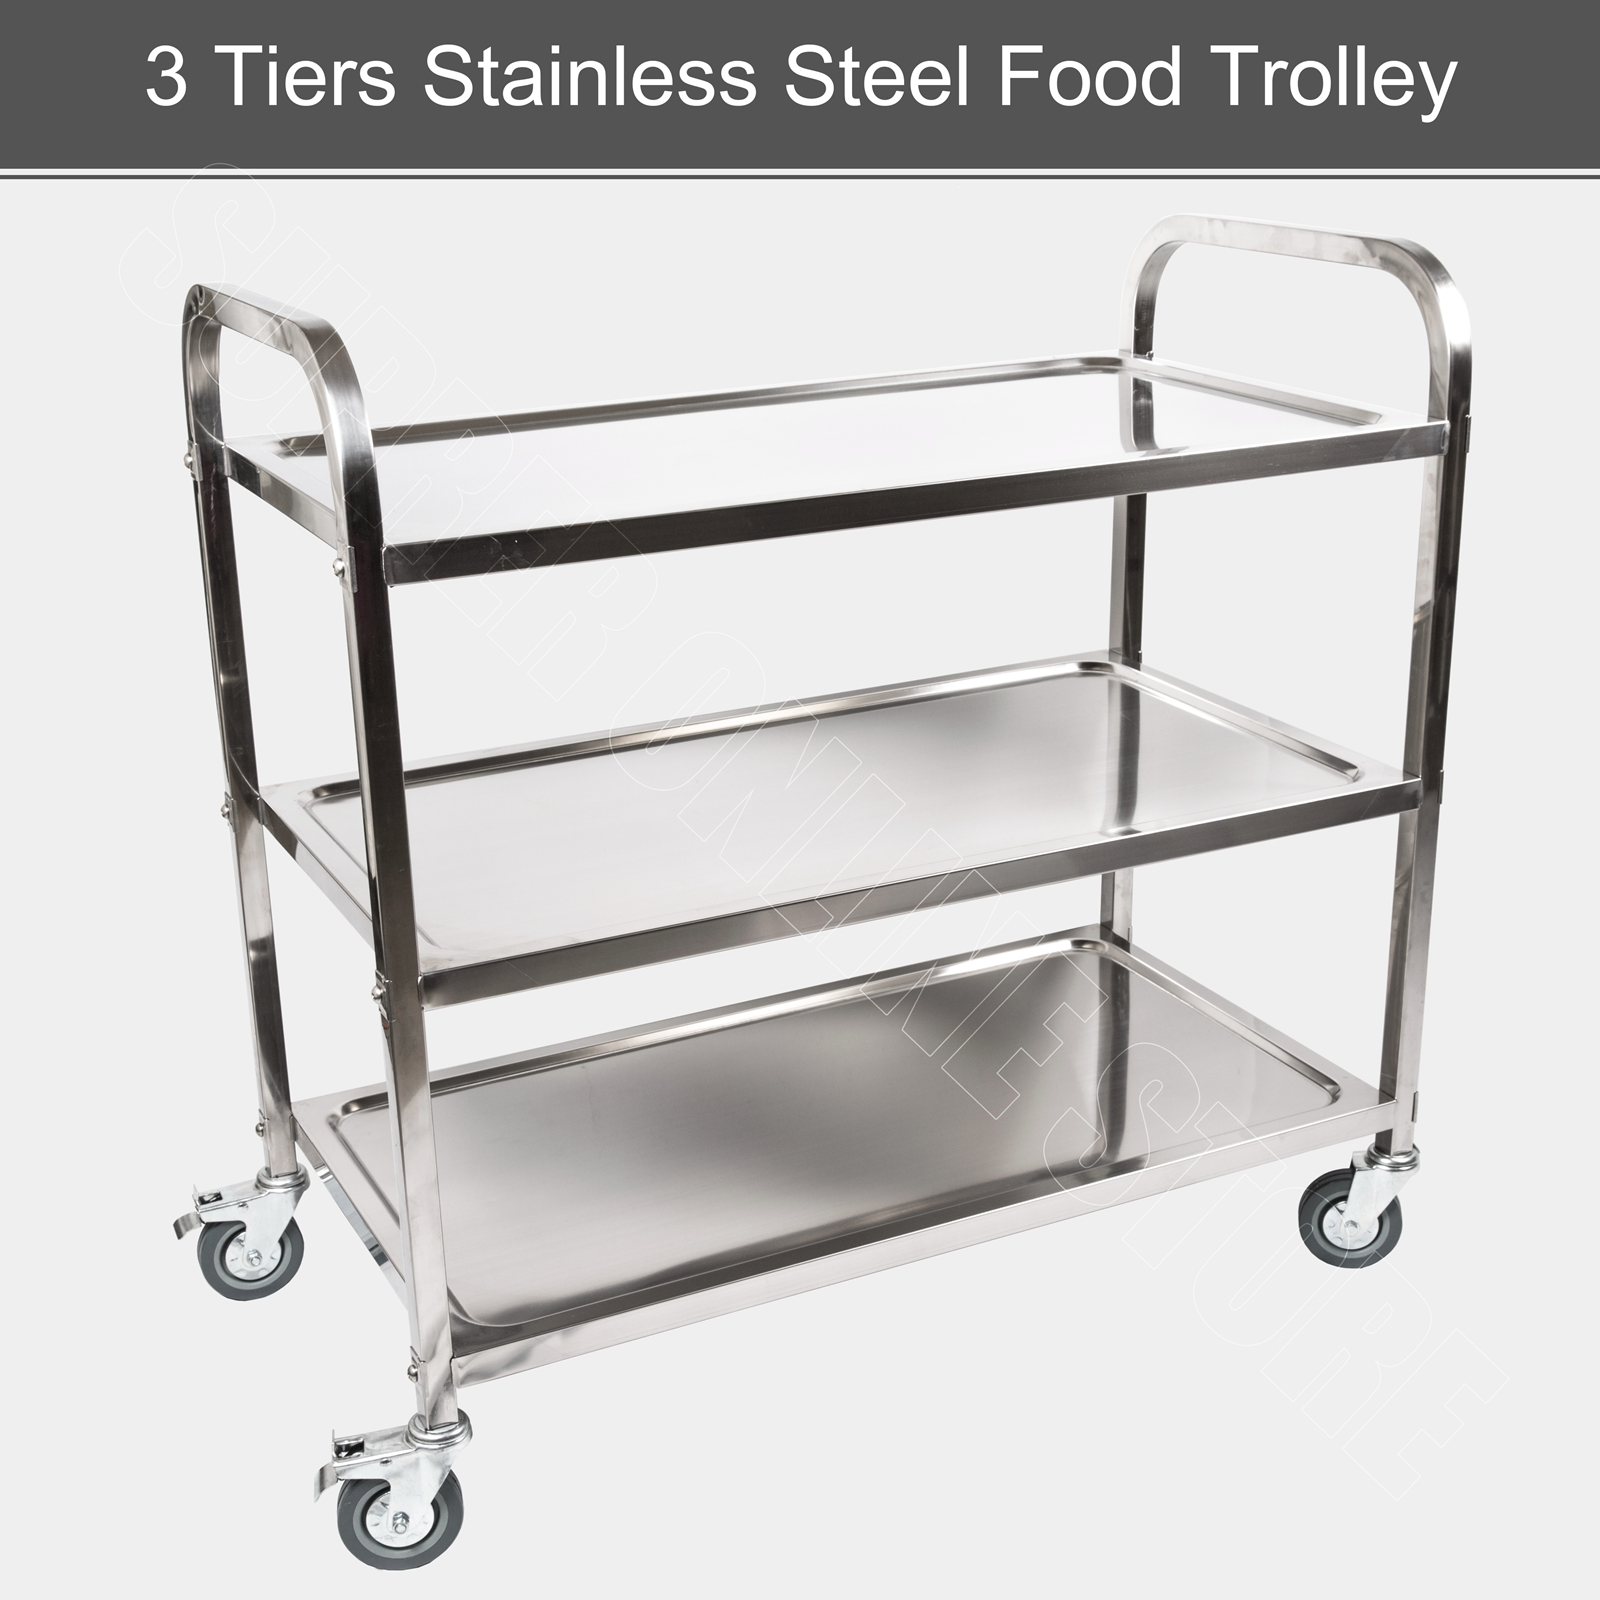 3 Tiers Food Trolley Cart Stainless Steel Utility Kitchen